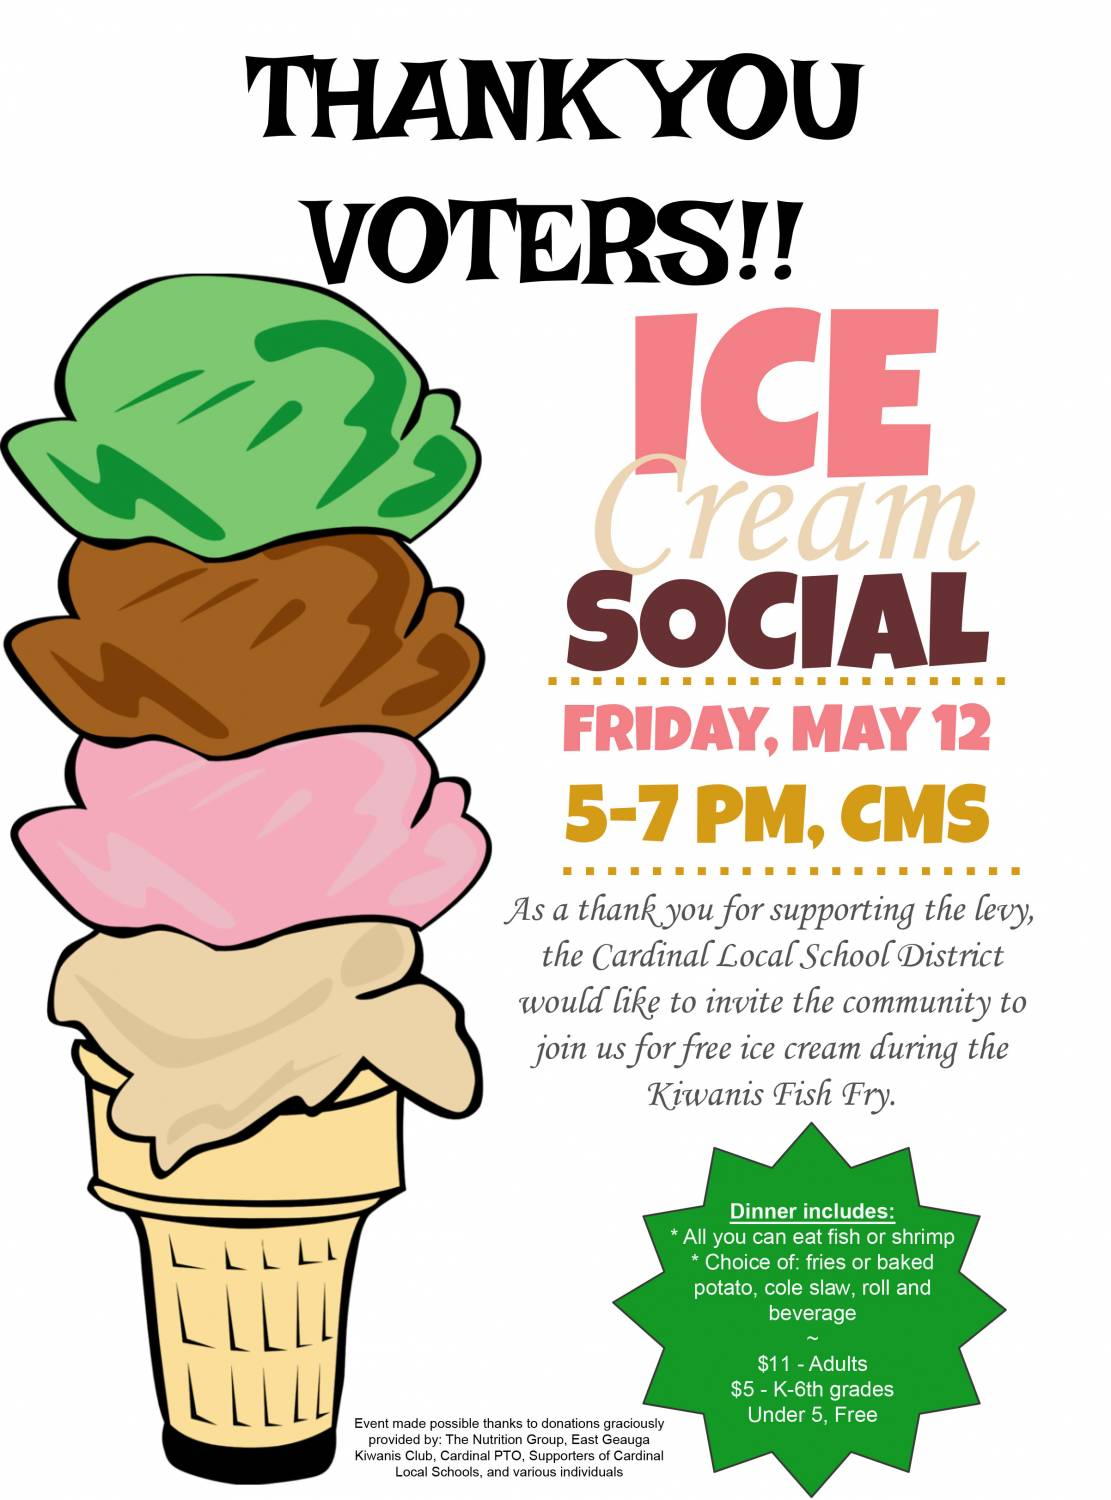 1111x1500 Ice Cream Social Thank You To Voters From Csd! Middlefield Village